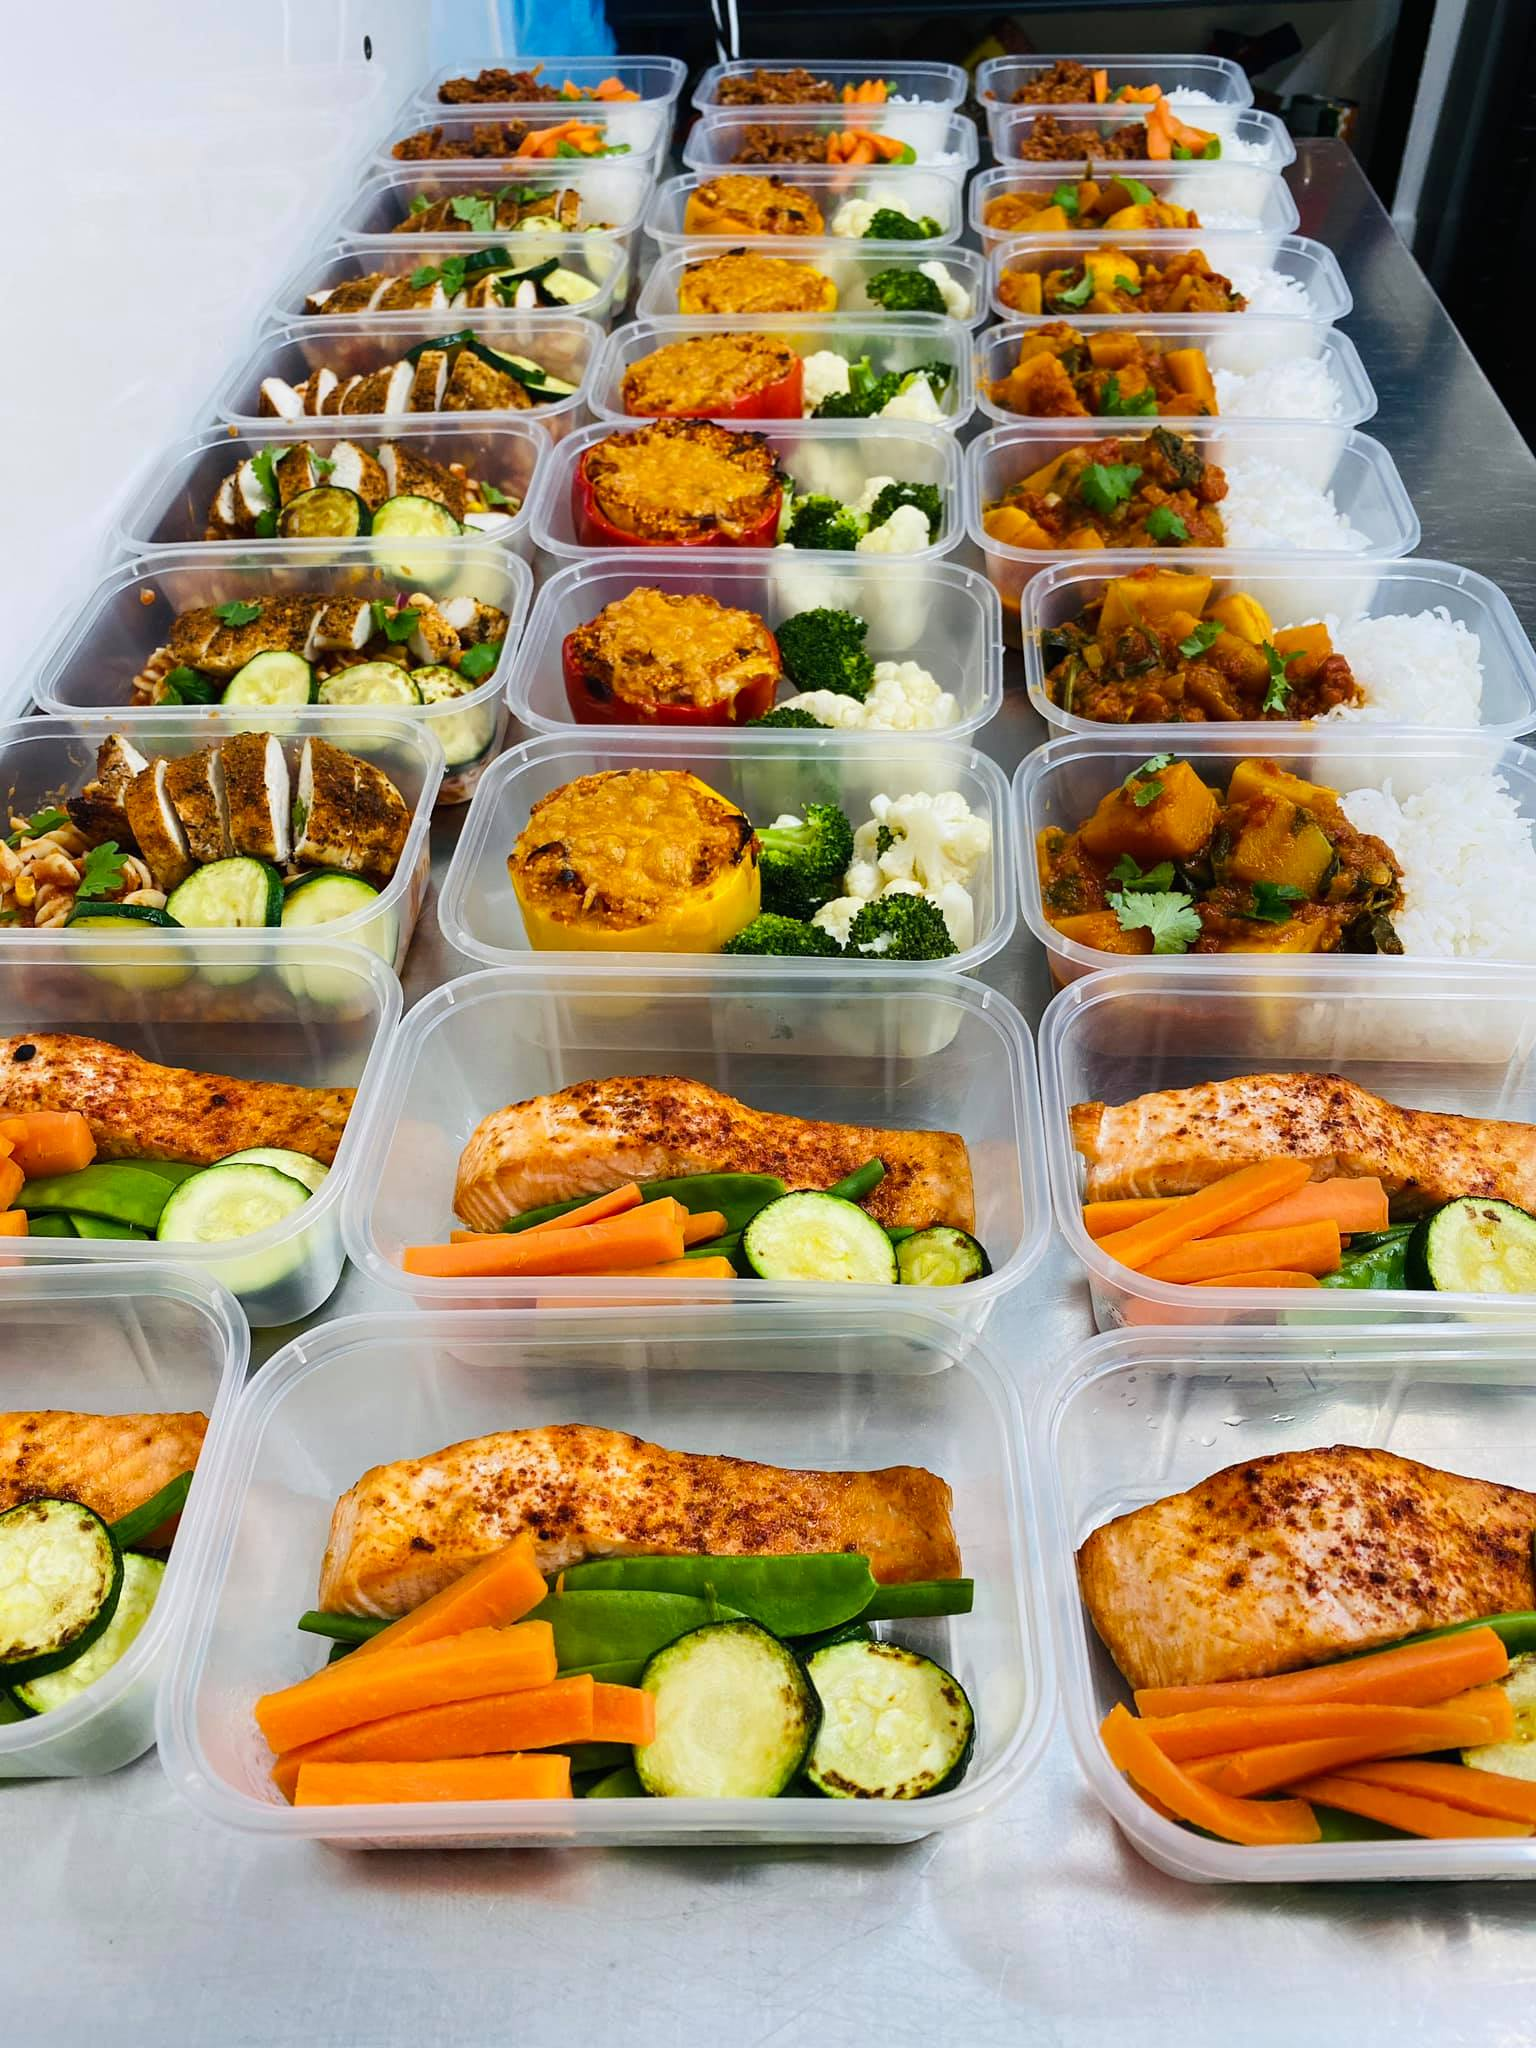 Monday Low Fat Meal Deal (5 Meals)